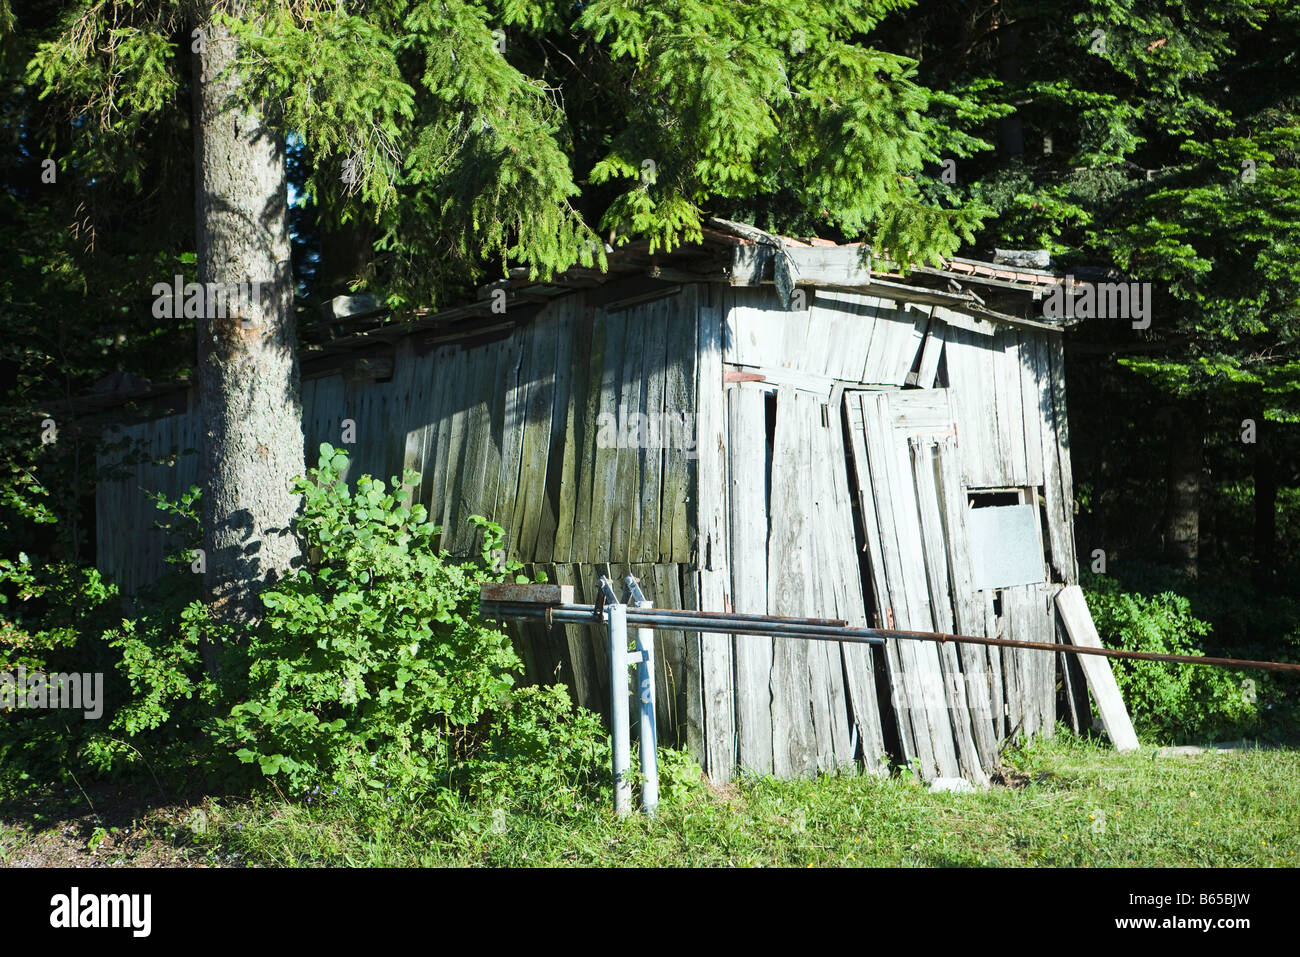 Dilapidated wooden shack - Stock Image